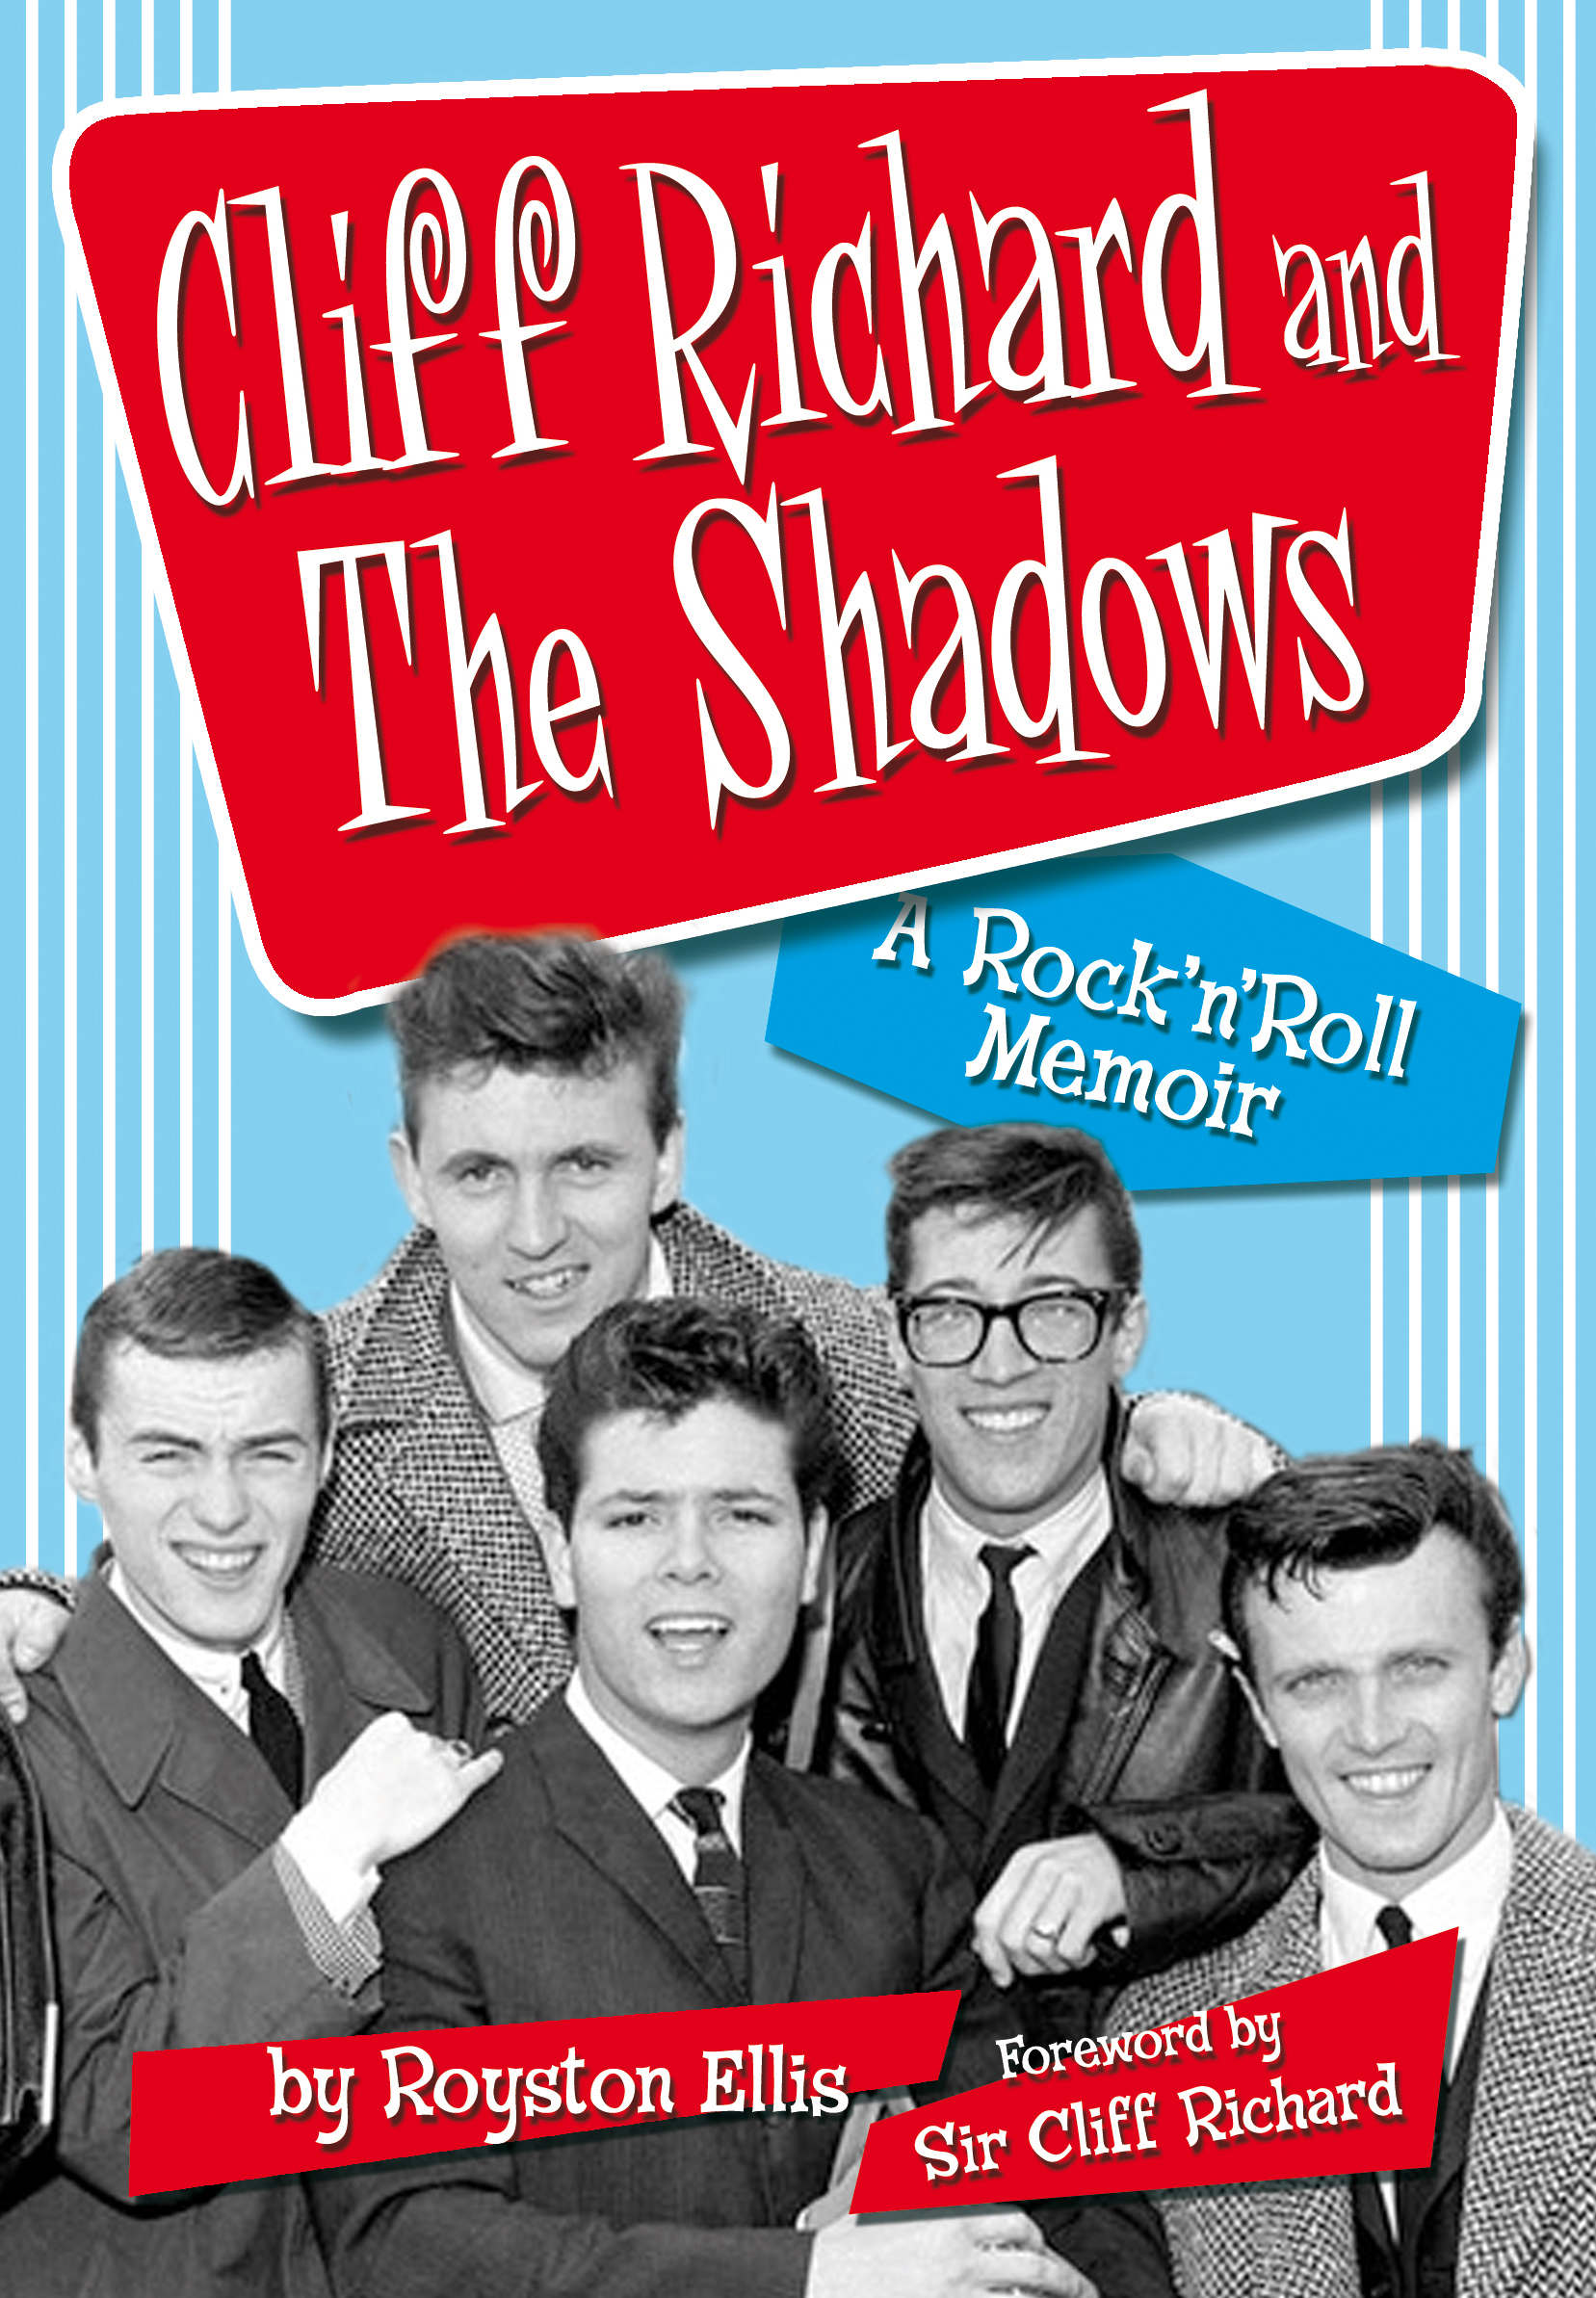 Cliff Richard and The Shadows – A Rock & Roll Memoir